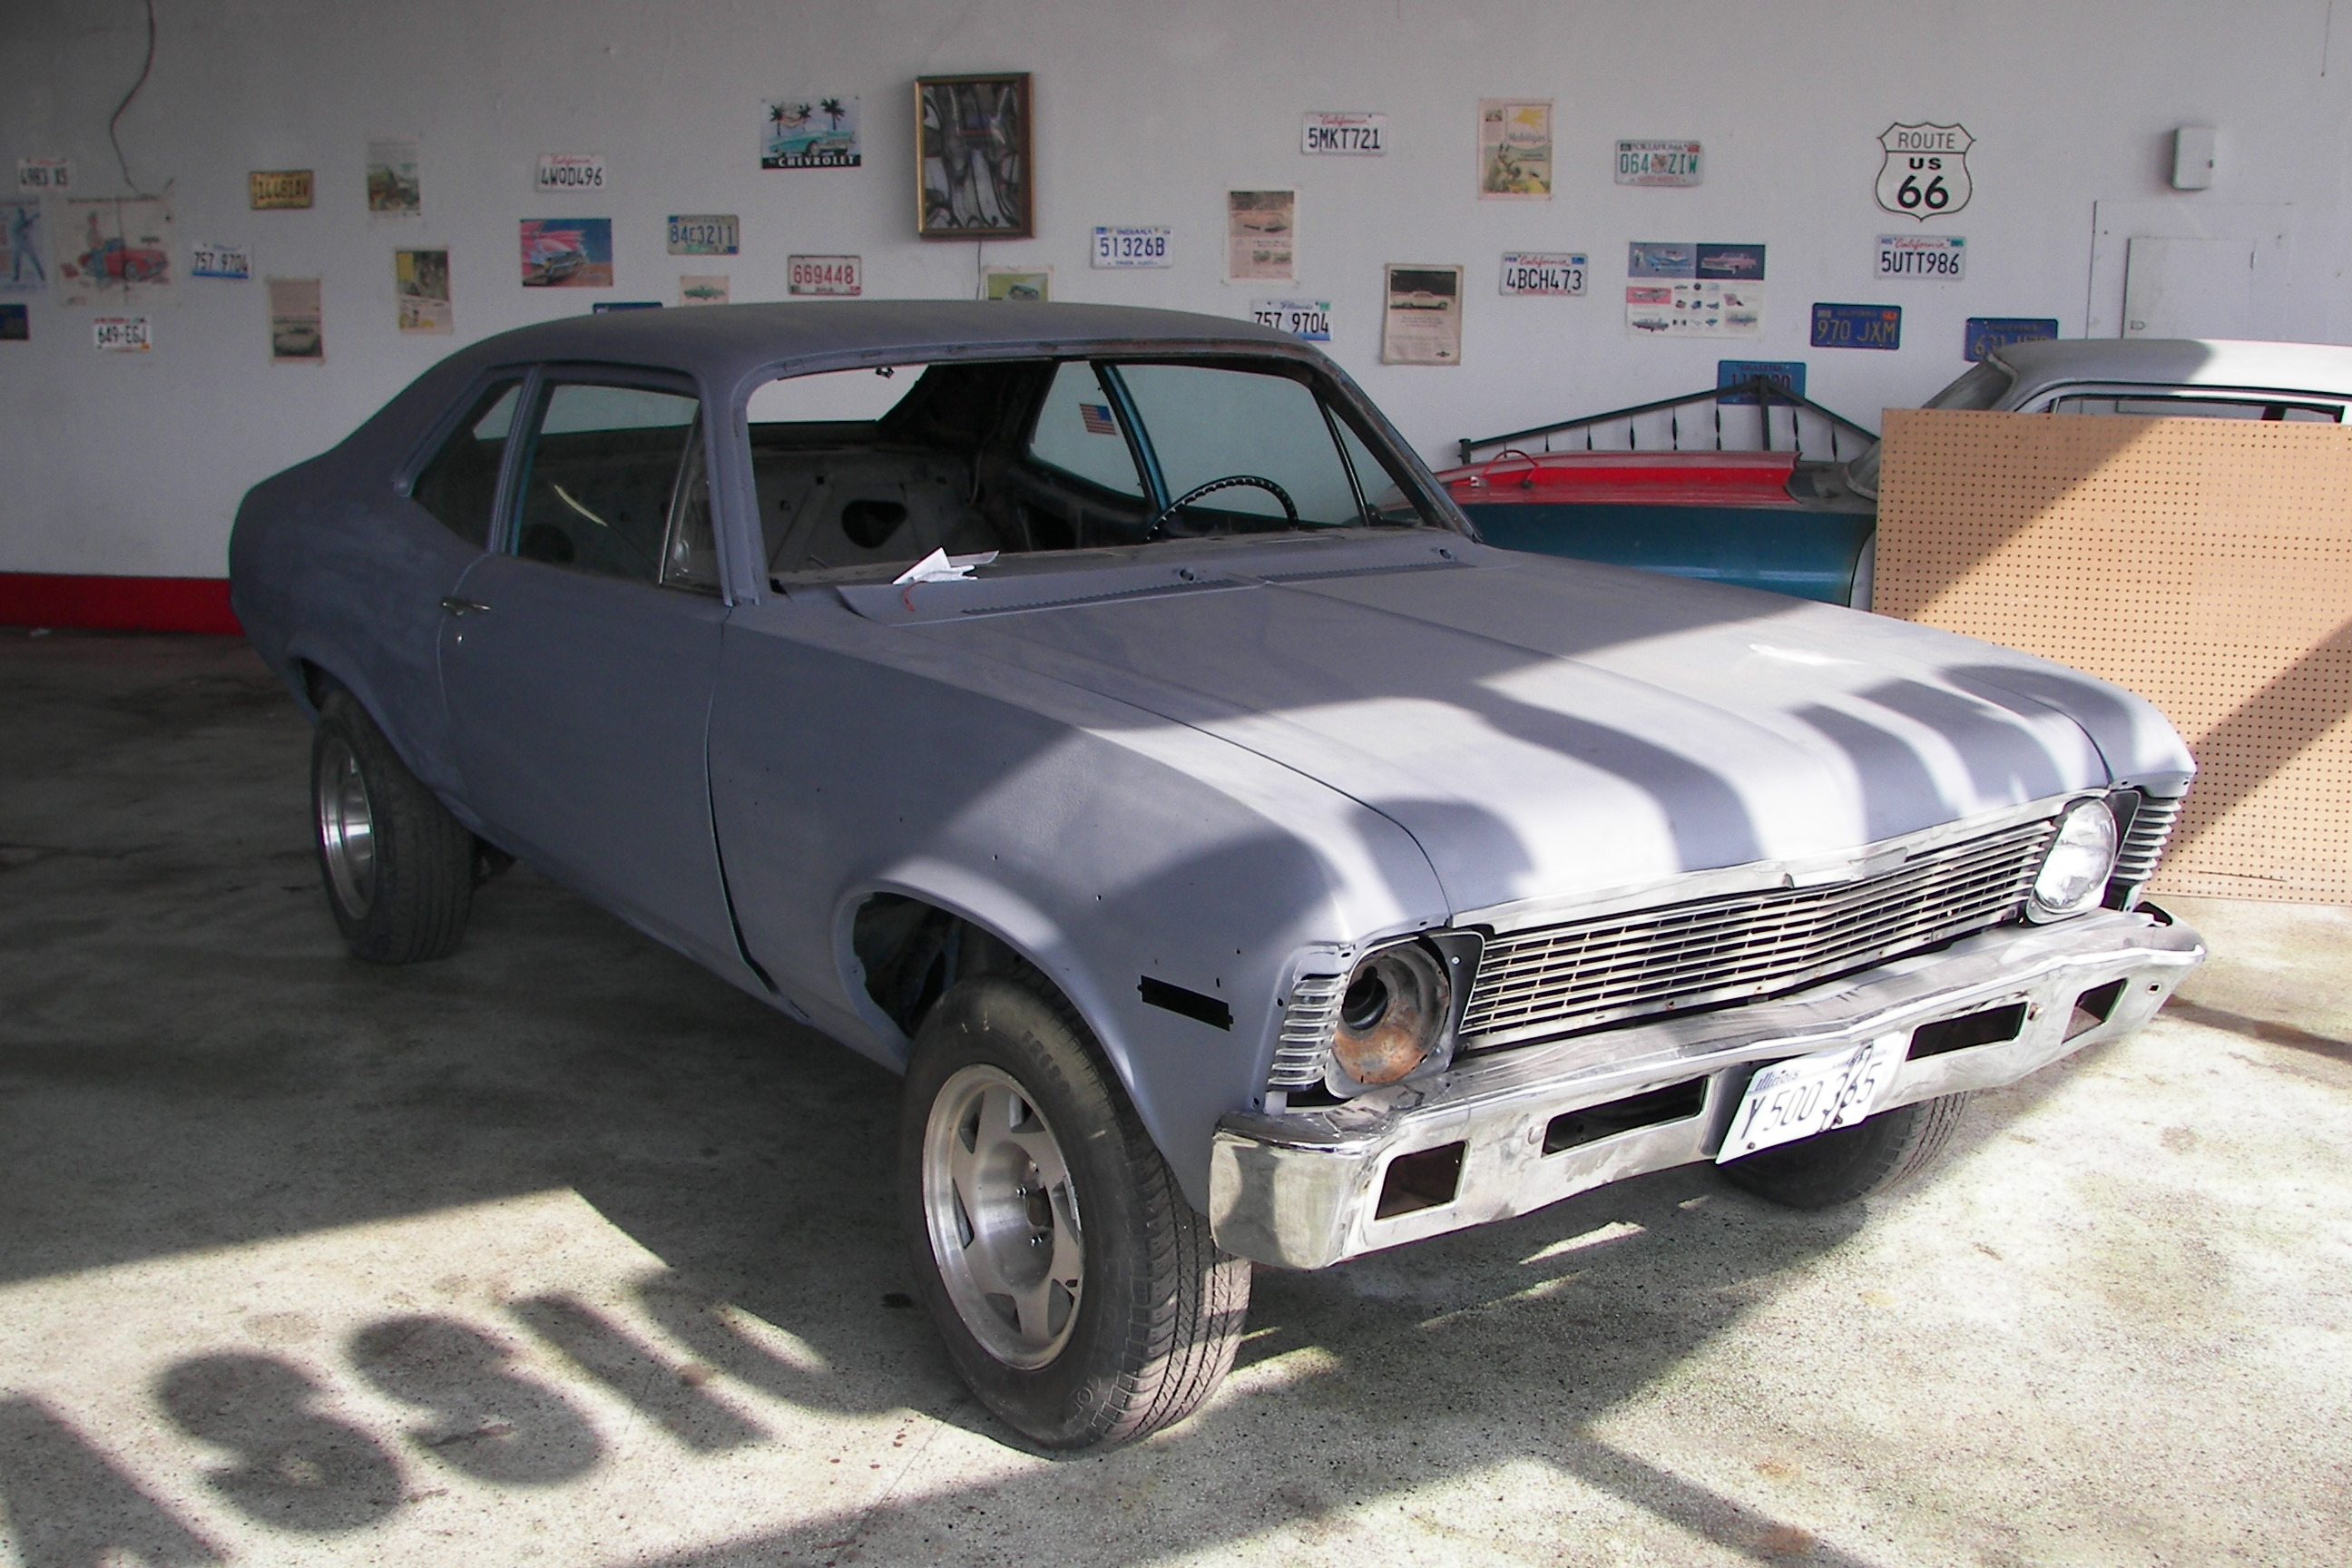 Craigslist East Idaho Cars: 1970 Chevy Nova For Sale At Craigslist